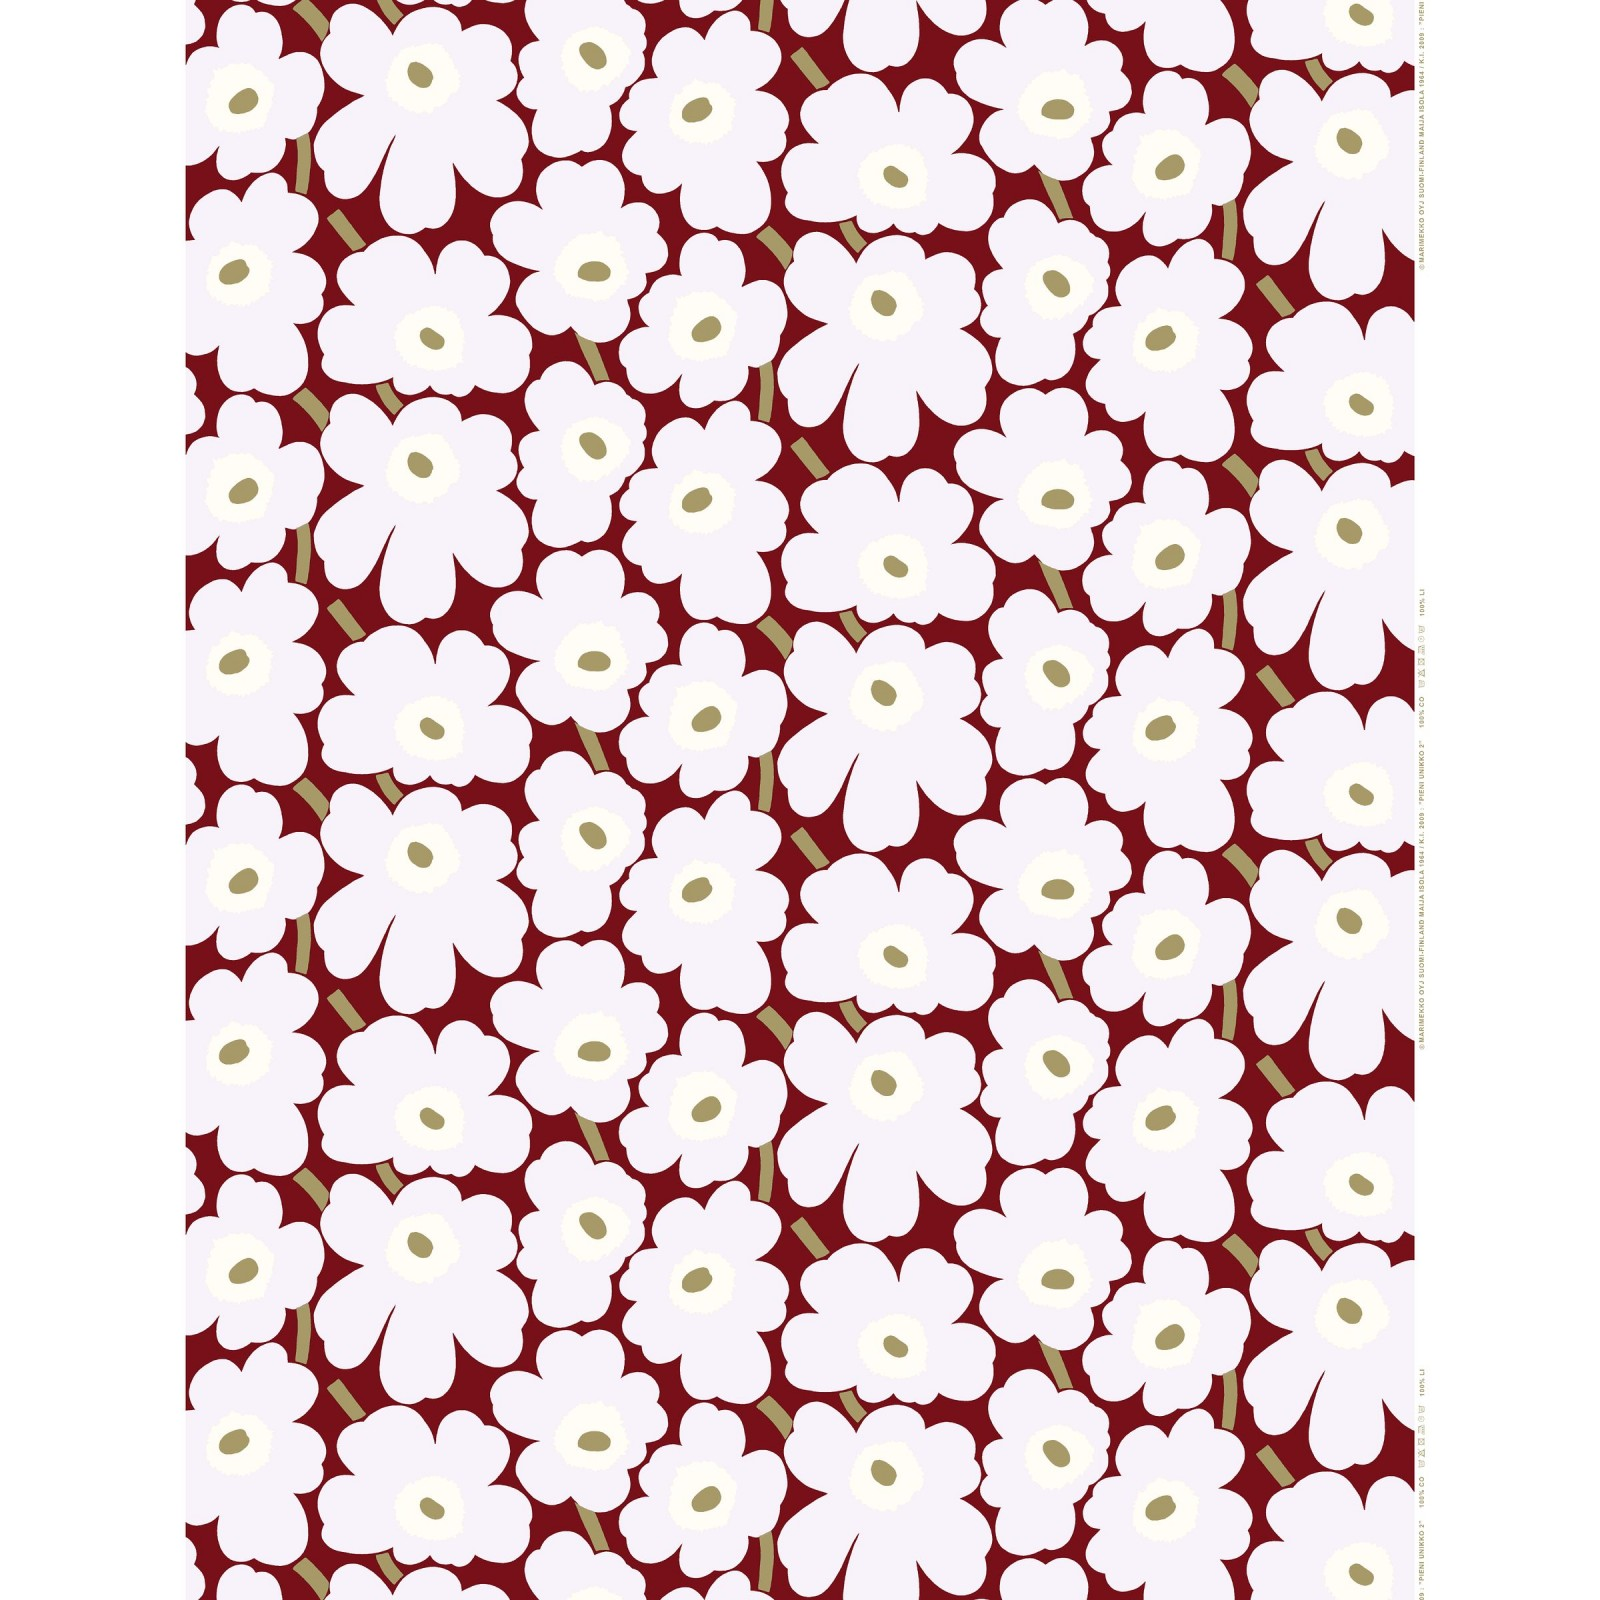 Marimekko Pieni Unikko Cotton per meter Red/Yellow Dot